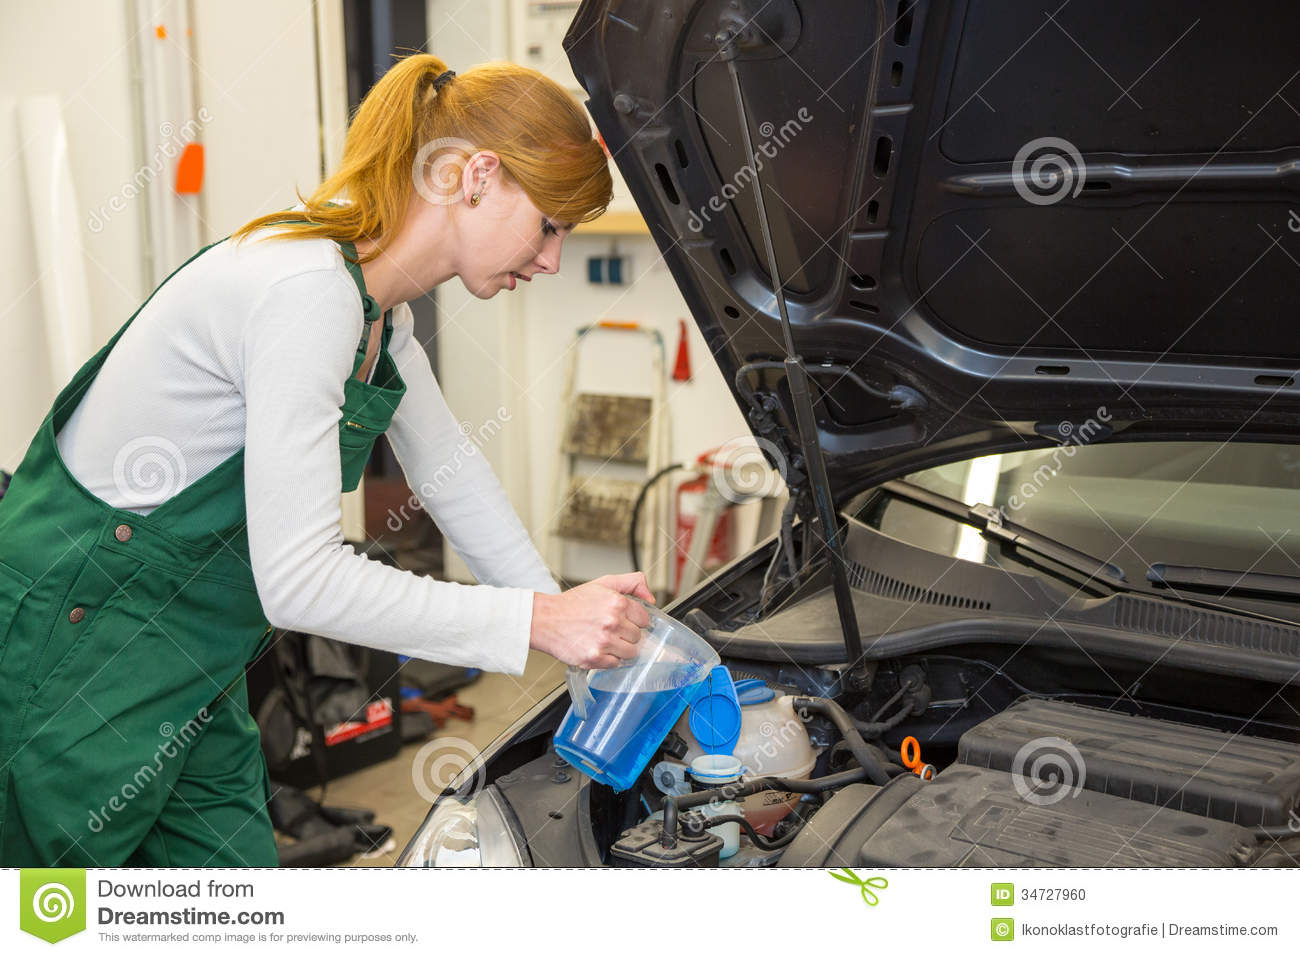 Female Mechanic Fills Coolant Or Cooling Fluid In Motor Of A Car.